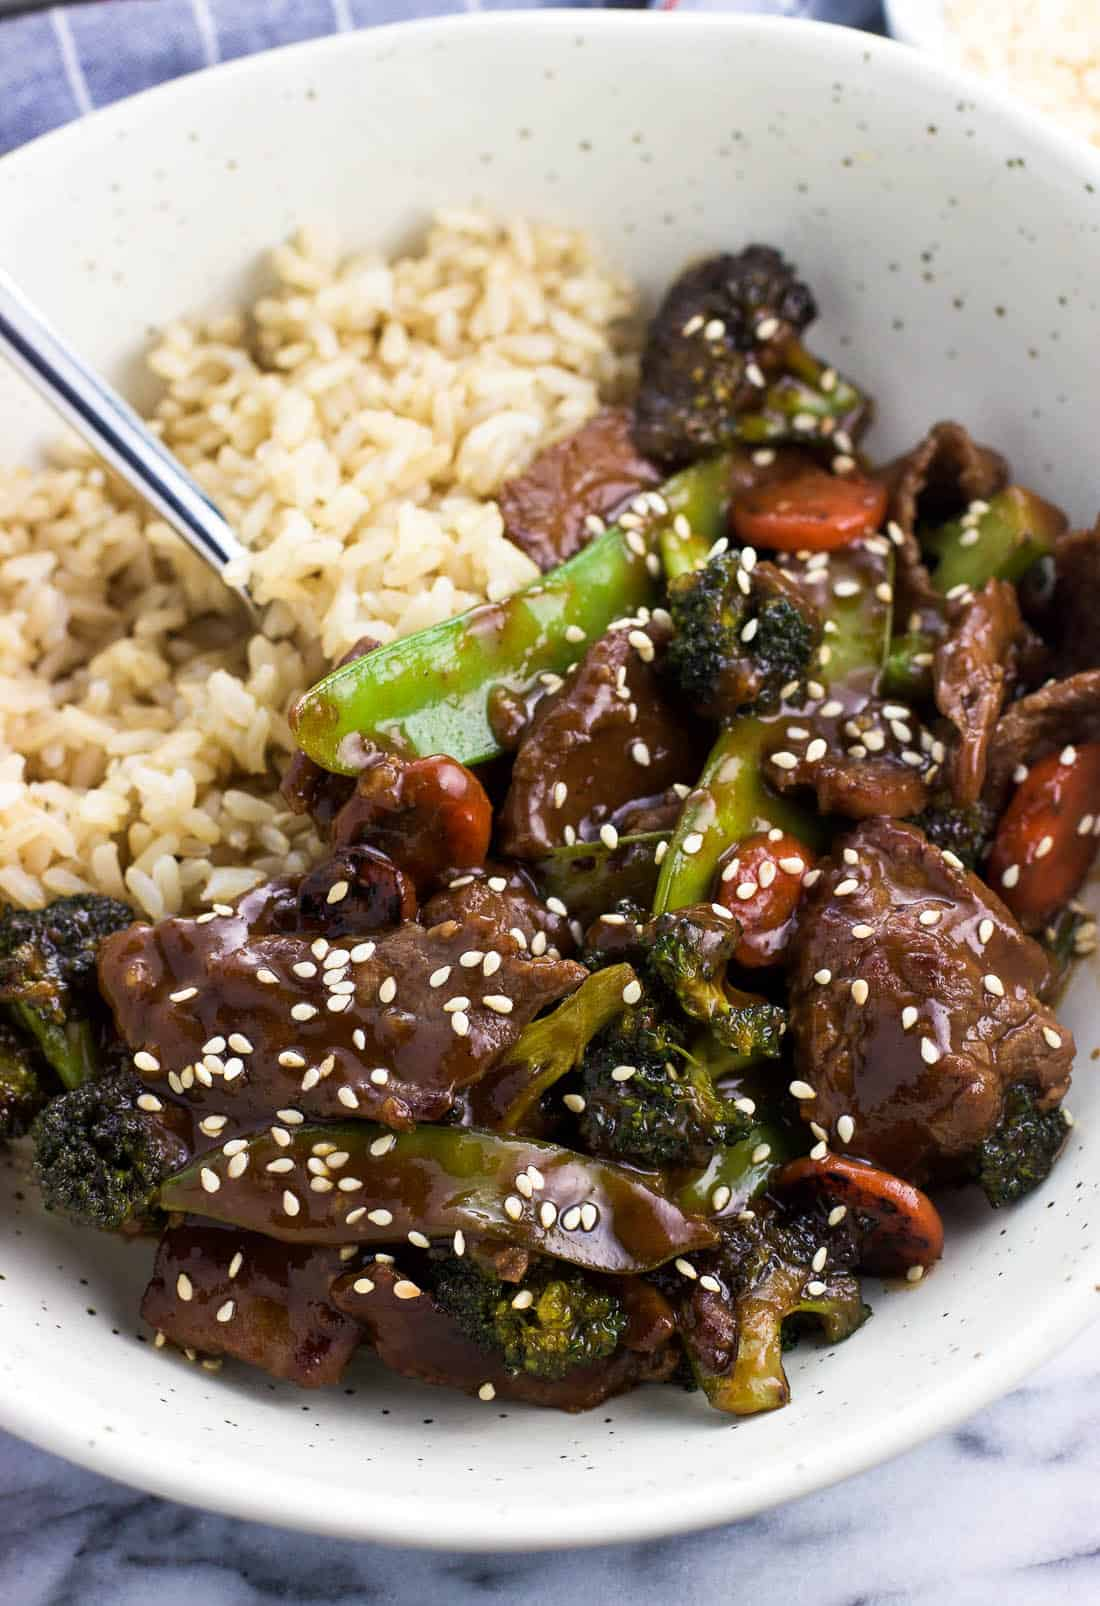 Balsamic peanut beef stir fry in a bowl served with brown rice.